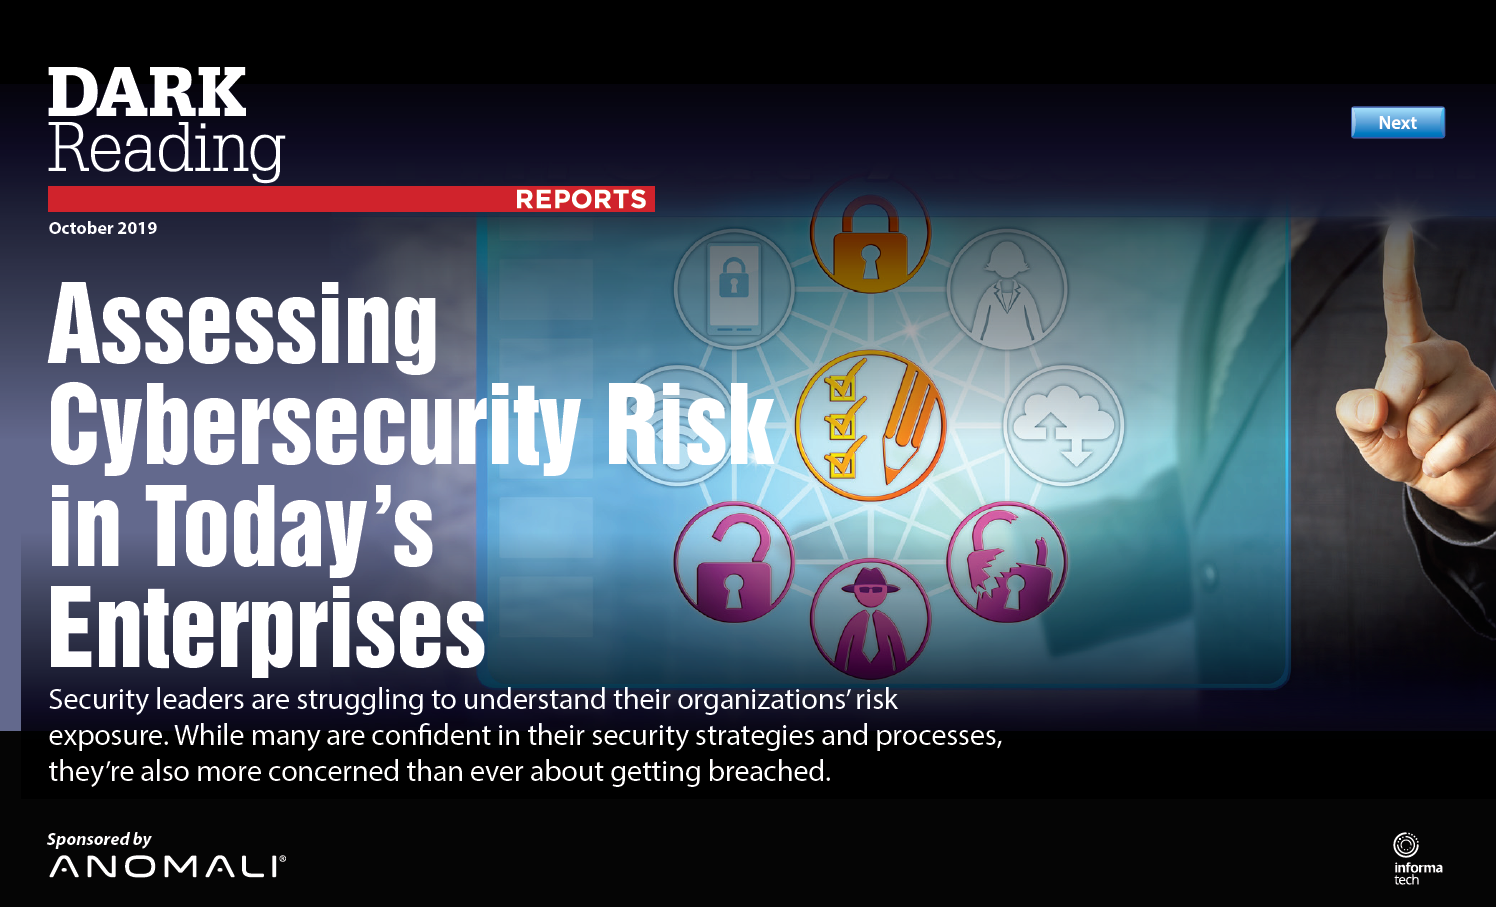 Assessing Cybersecurity Risk in Today's Enterprise